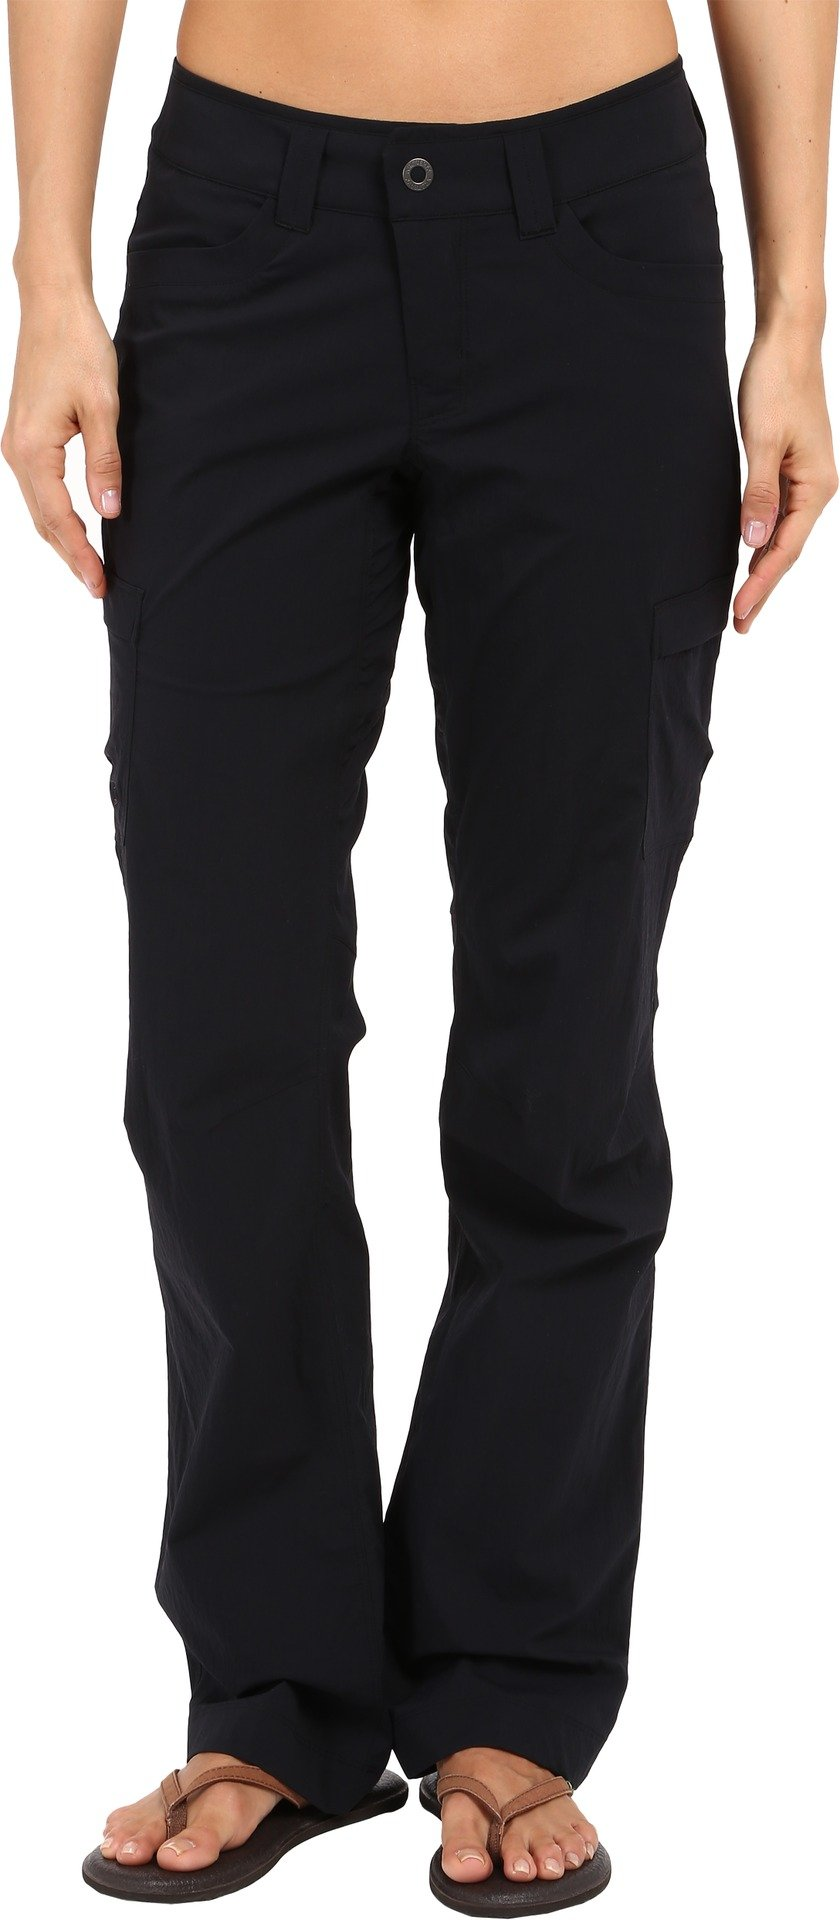 Arc'teryx Women's Parapet Pants Black Pants